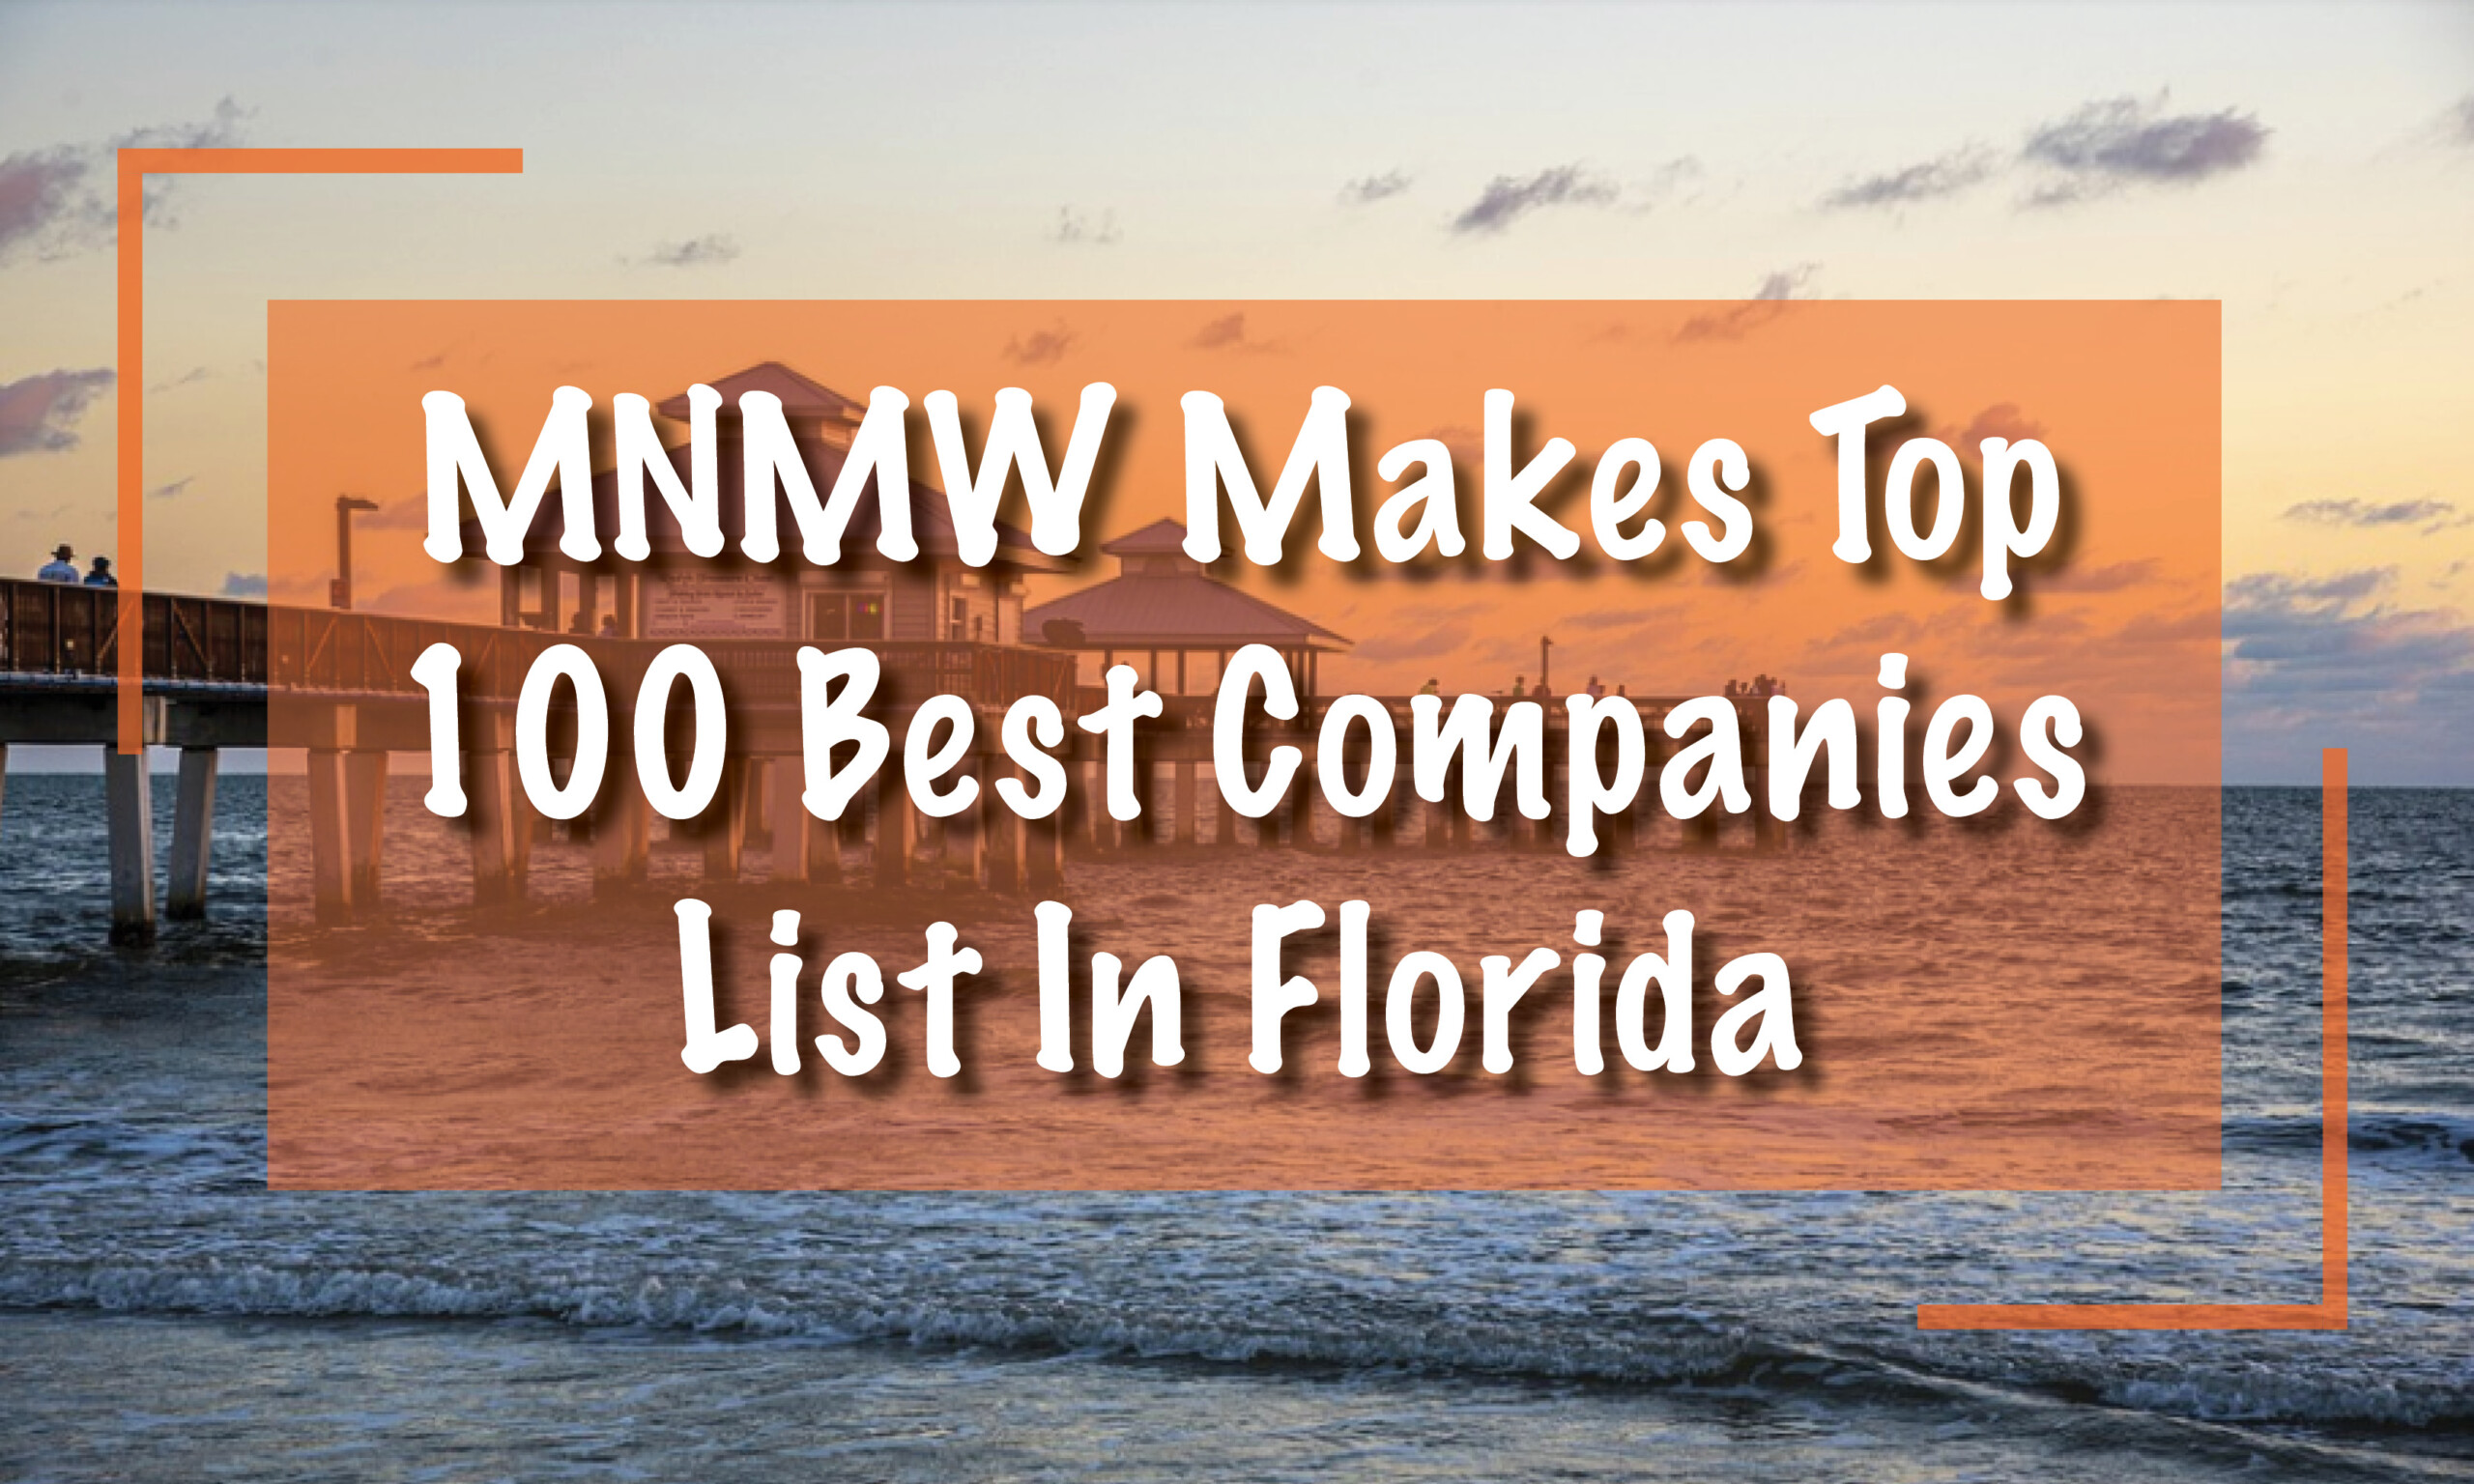 MNMW Makes Top 100 Best Companies List In Florida